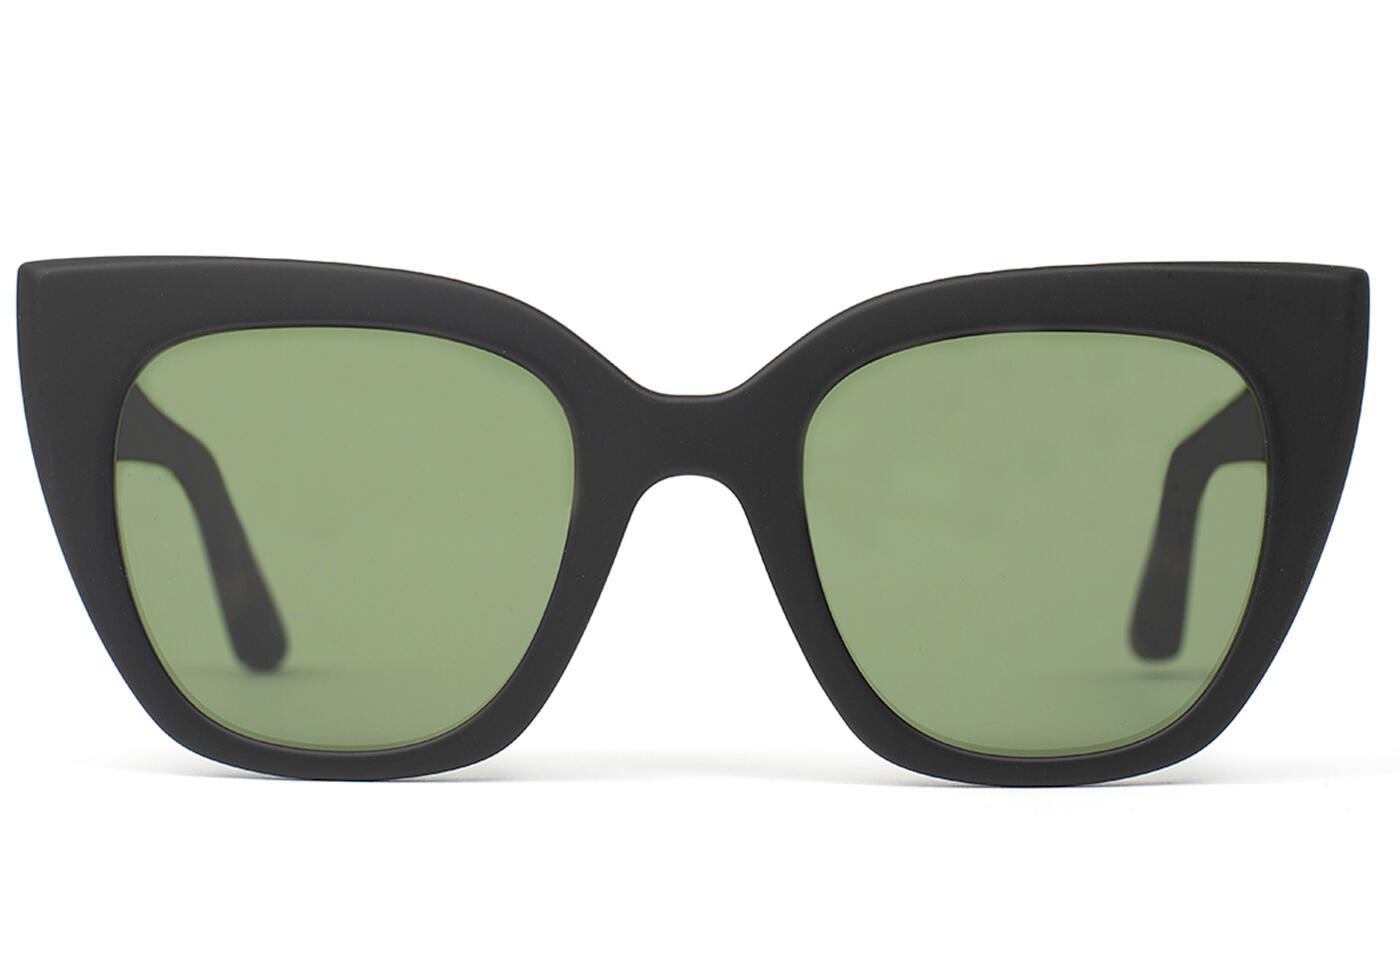 Traveler- Sydney Sunglasses